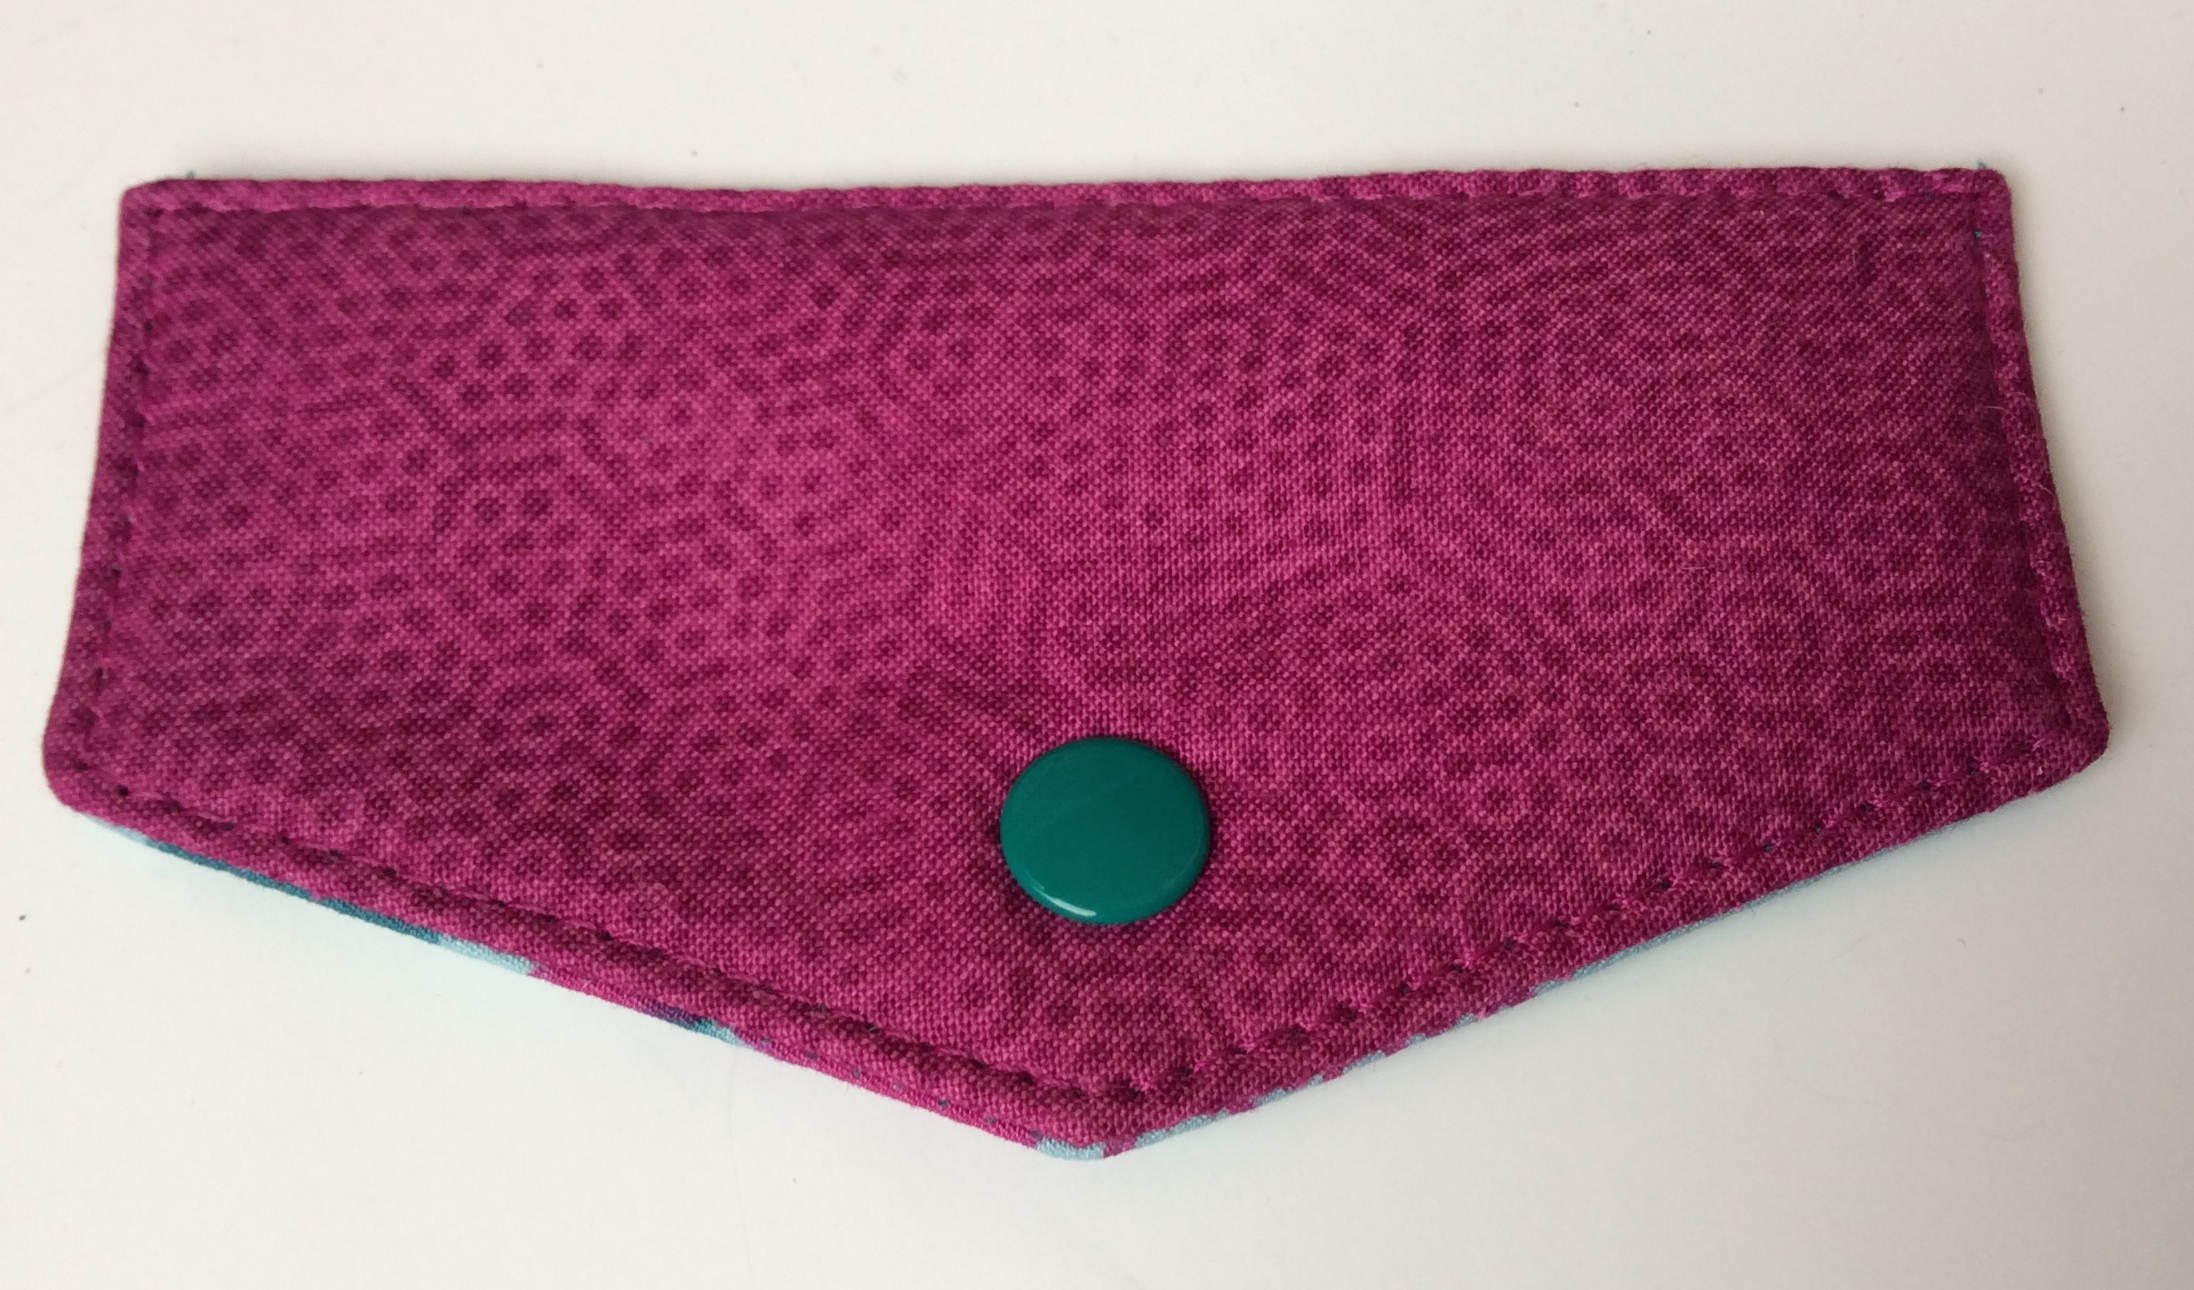 . . . the snap is in place! I love the color of this snap because it brings out the lining color!